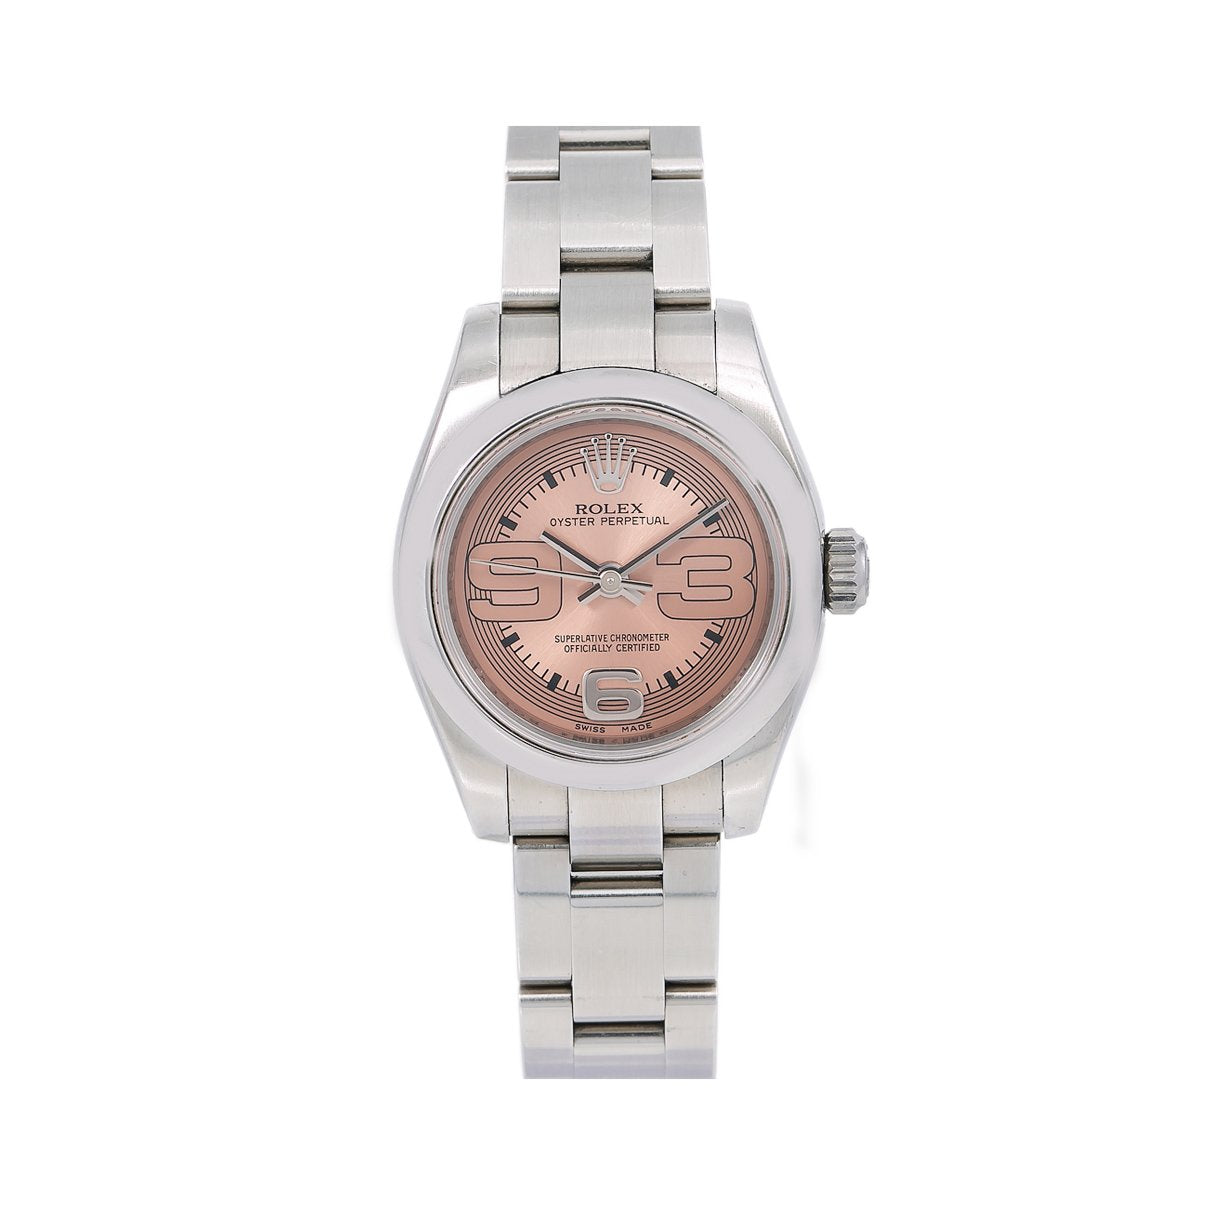 Rolex Oyster Perpetual 176200 26MM Pink Dial With Stainless Steel Bracelet